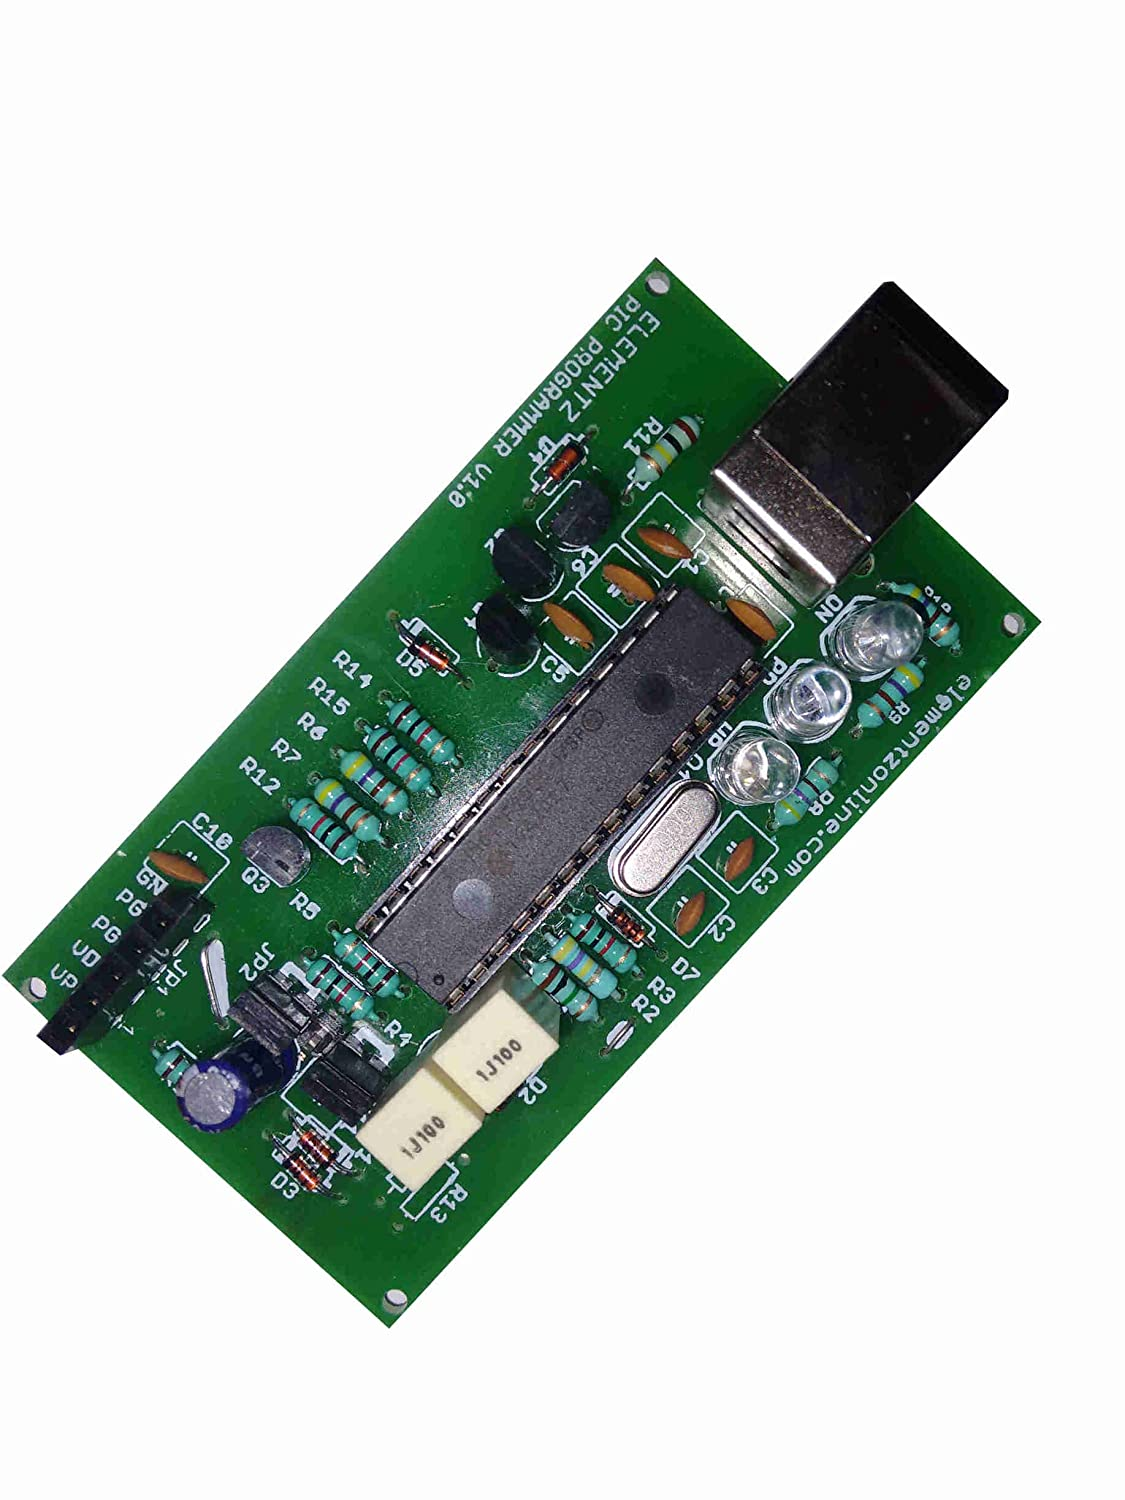 Elementz Universal Pic Usb Icsp Serial Programmer With Zif Socket Jdm2 18f Flasher Usbpicprog For All Microcontrollers And Microprocessors